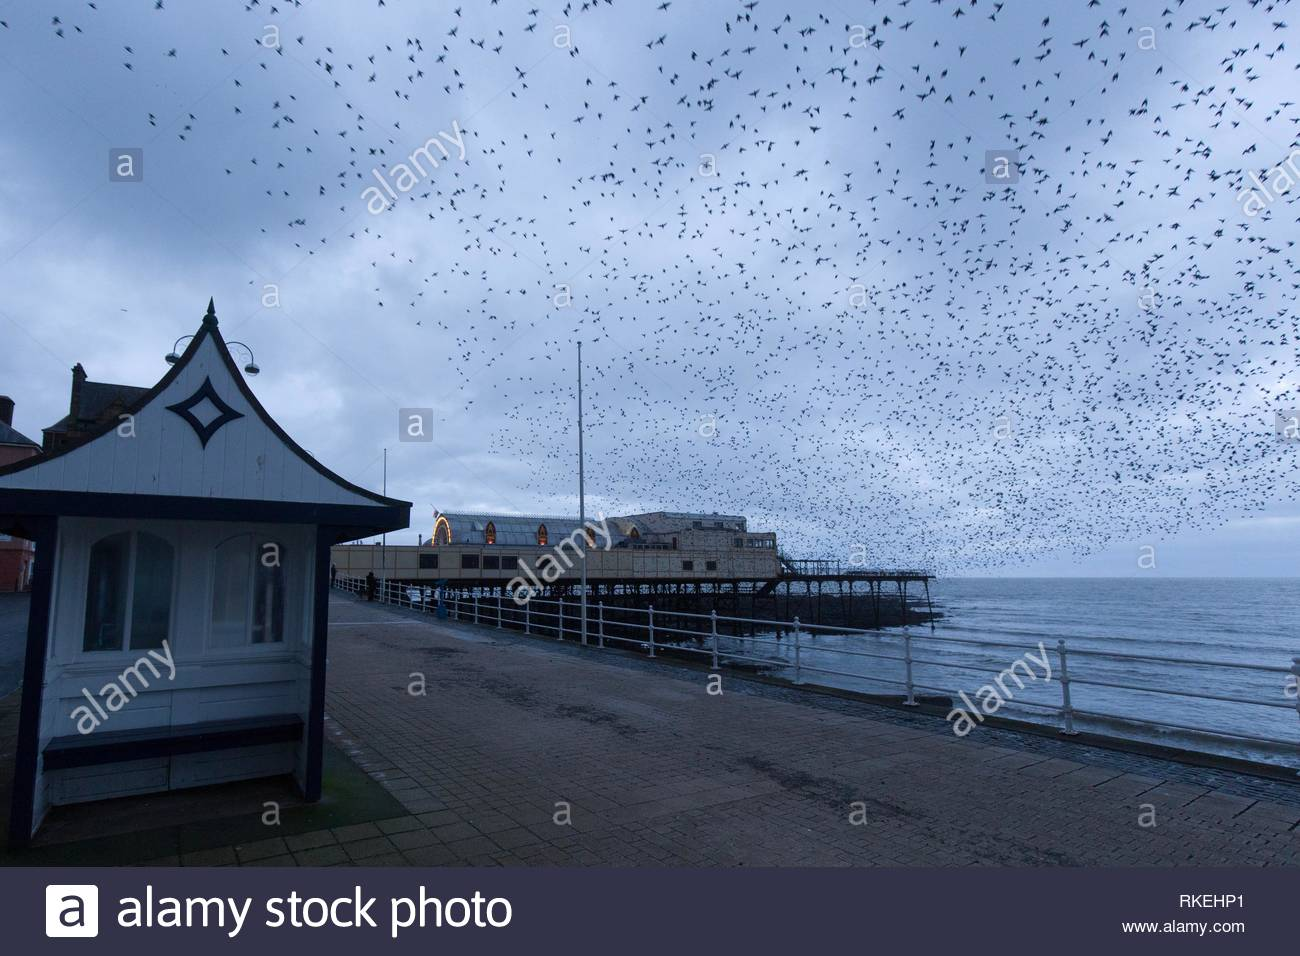 Aberystwyth, Ceredigion, Wales, UK 11th February 2019 UK weather: Cloudy start to the morning in Aberystwyth as the starlings leave their overnight roost from the underside of the Pier. Credit: Ian Jones/Alamy Live News Stock Photo